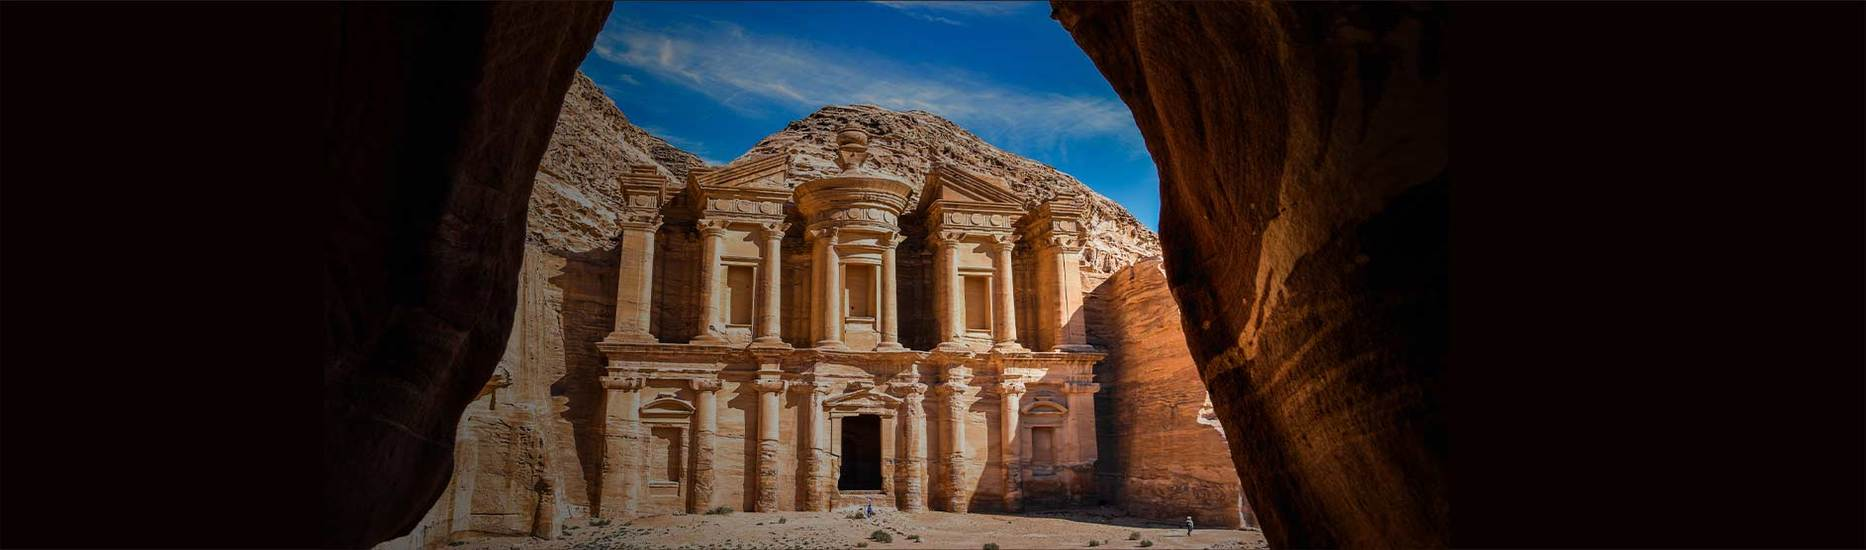 Petra and Wadi Rum 2 Day Tour from Tel Aviv $280